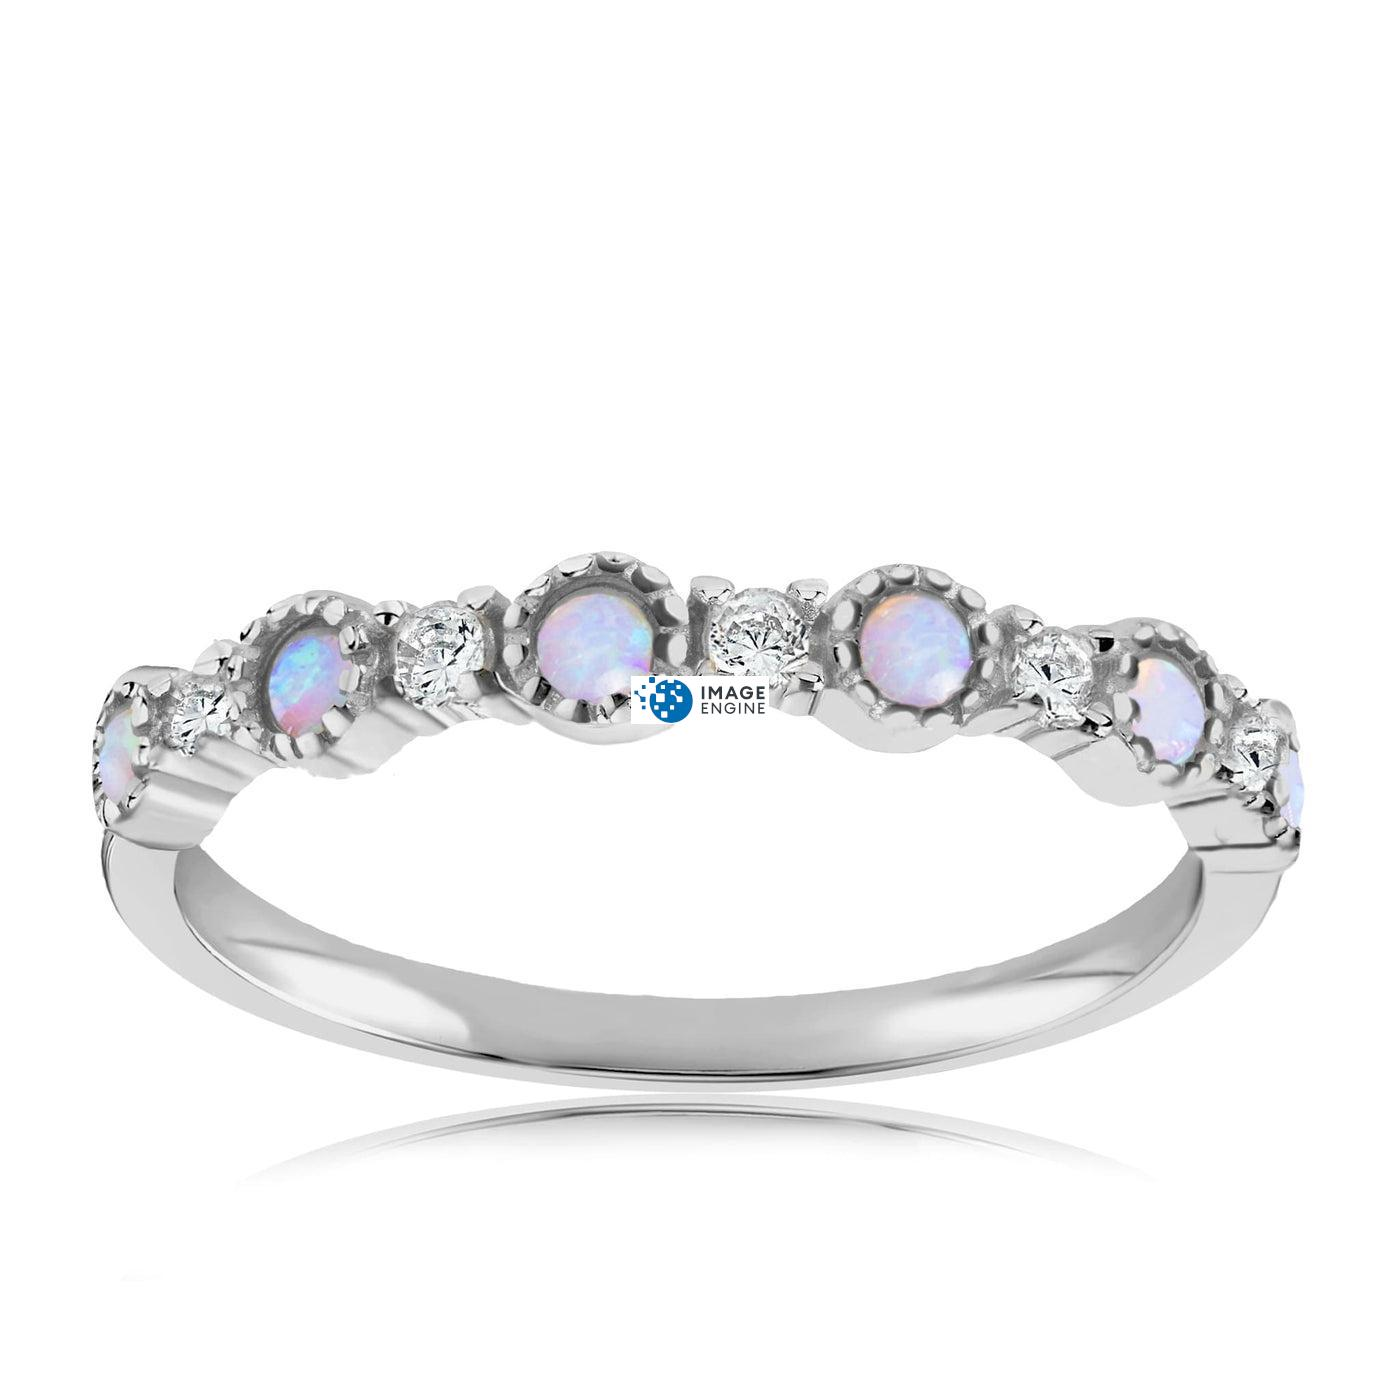 Debra Dots Opal Ring - Front View Facing Up - 925 Sterling Silver